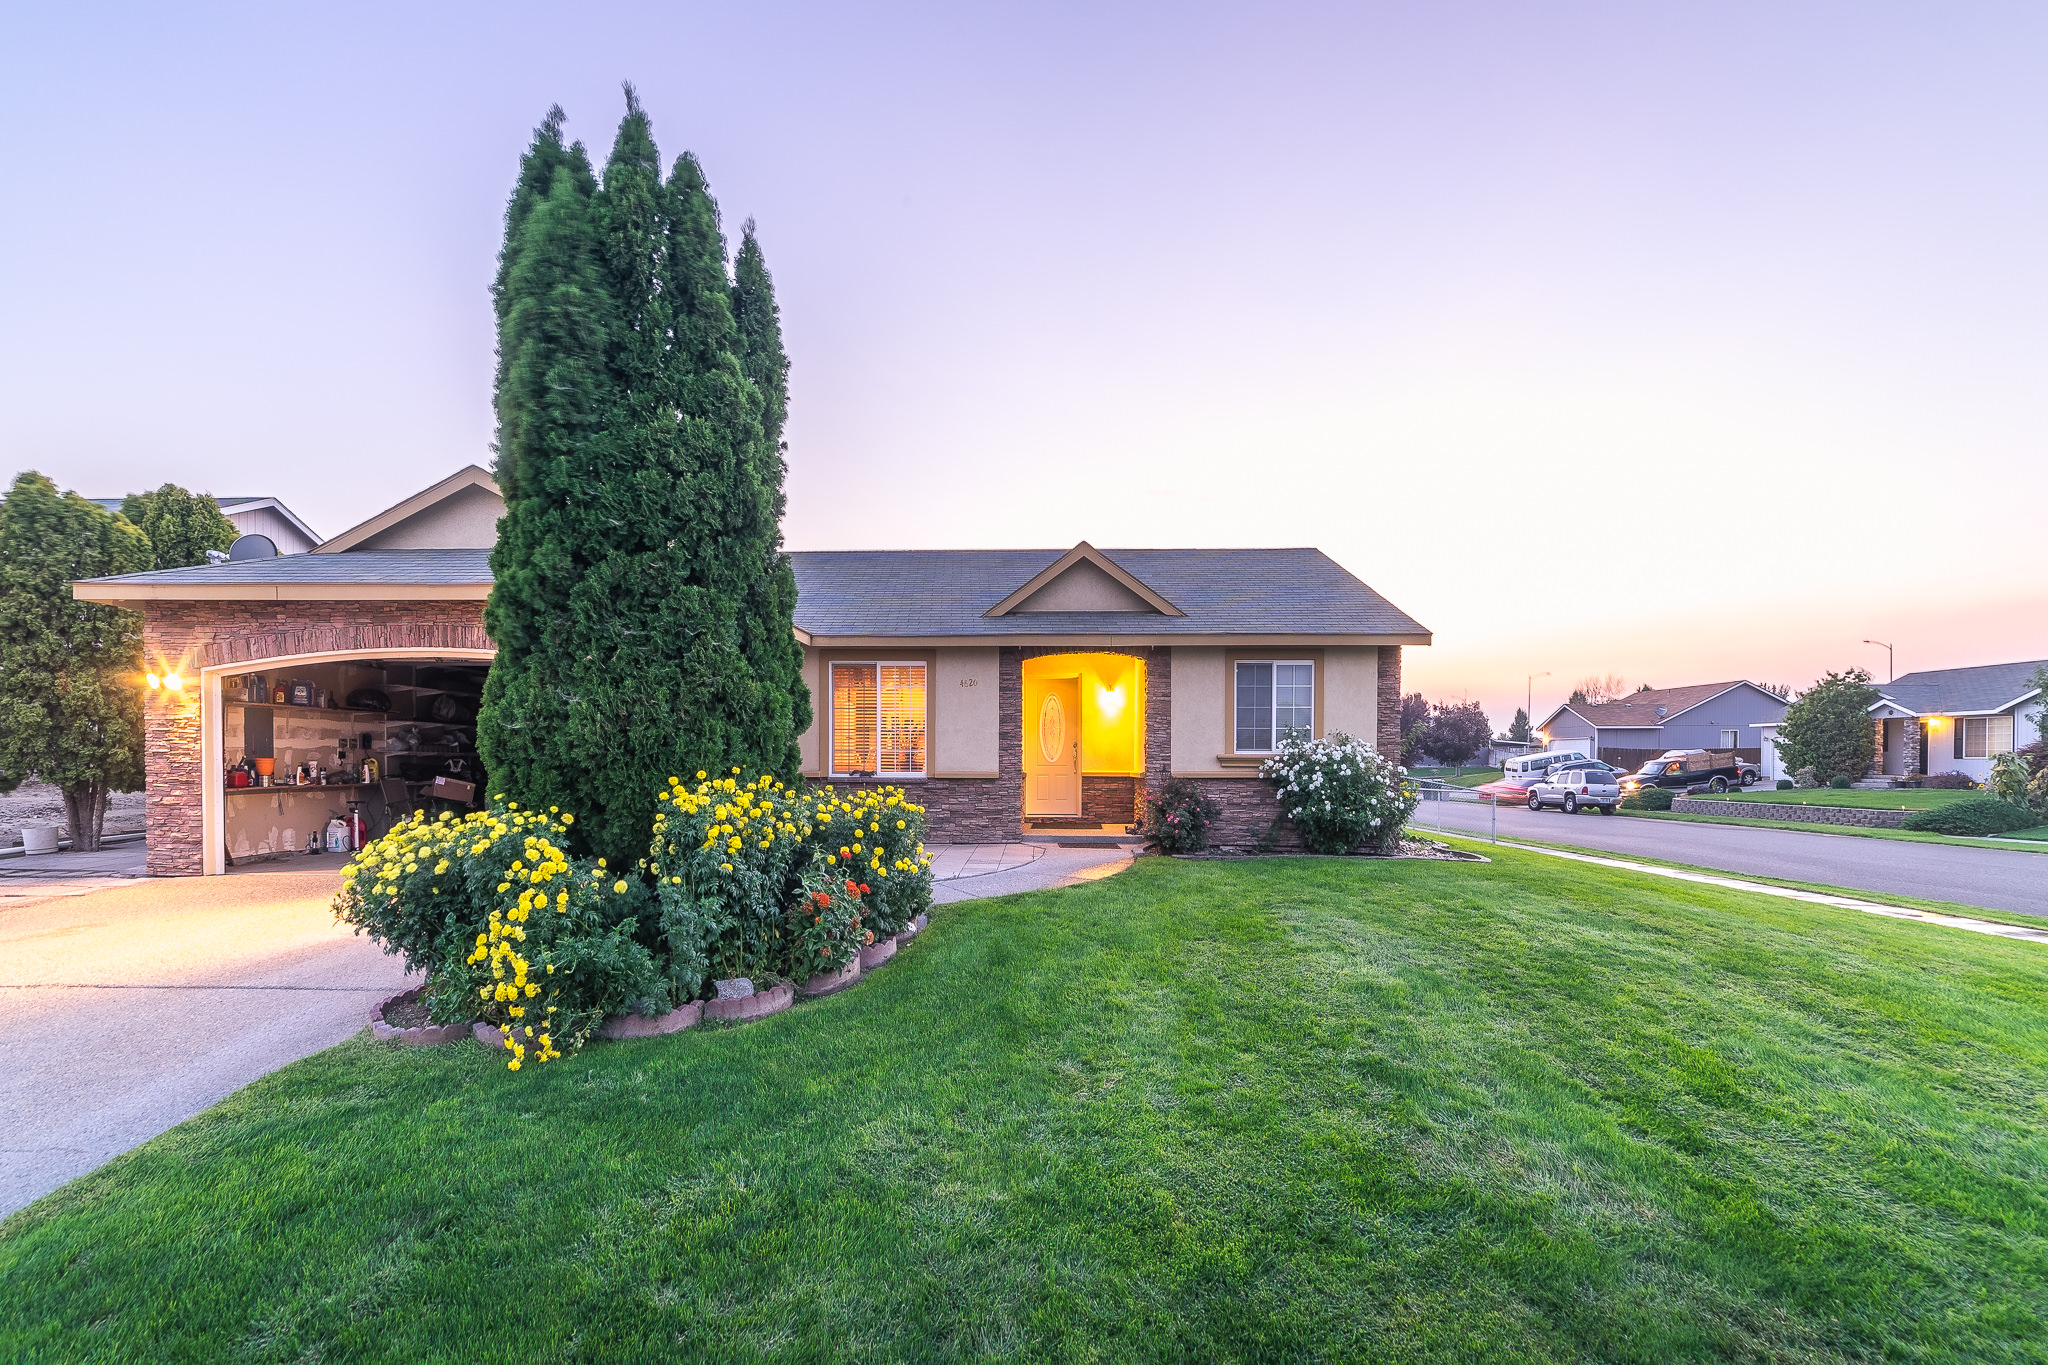 Tri-cities professional real estate photos